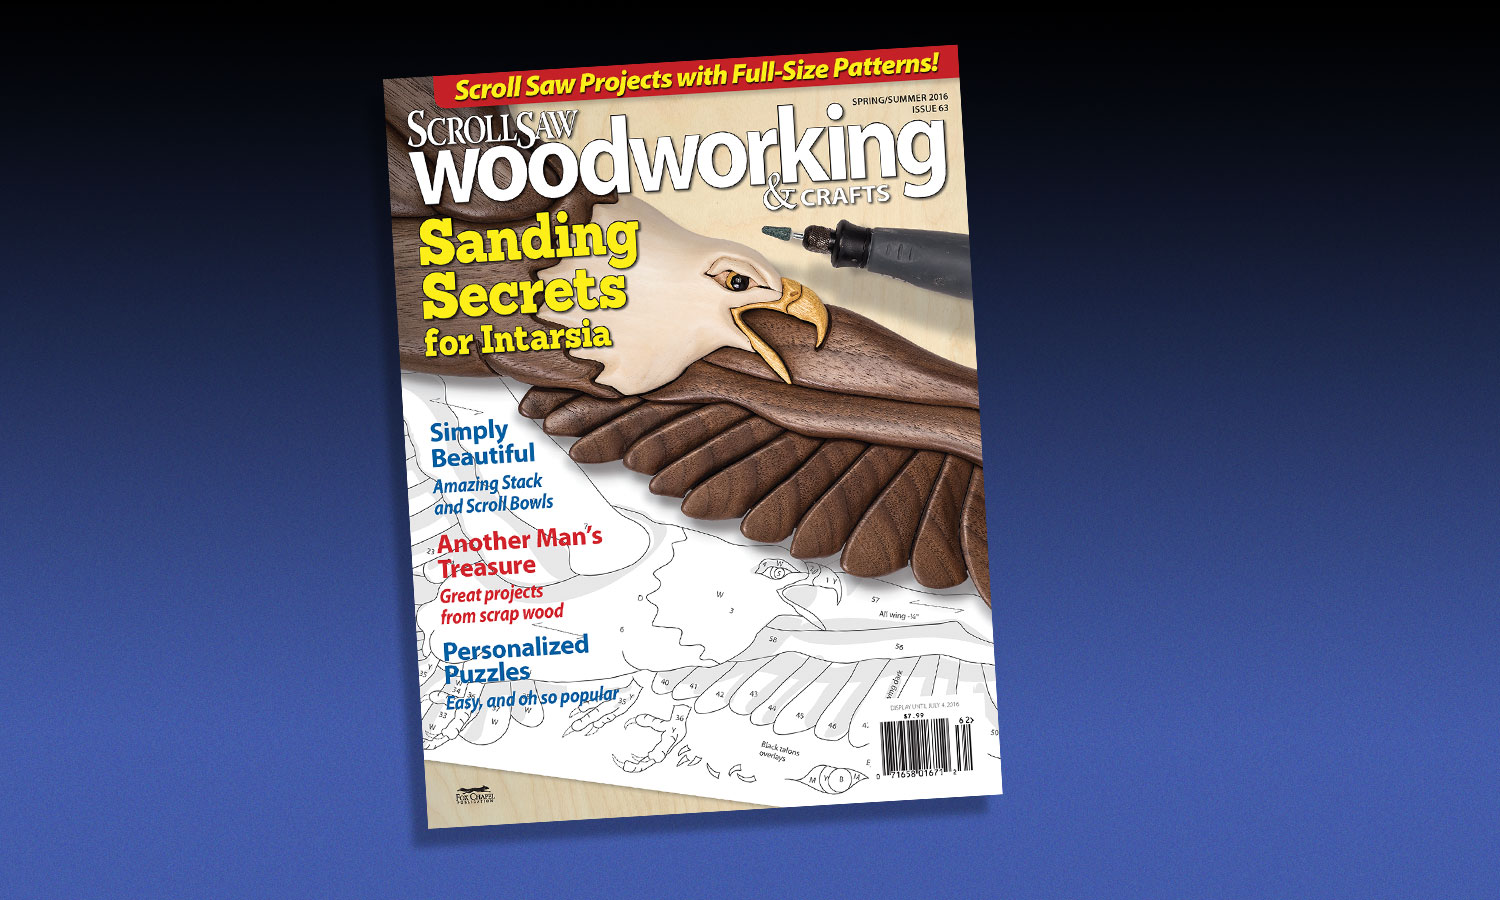 Scroll Saw Woodworking & Crafts Spring  / Summer 2016: Issue 63